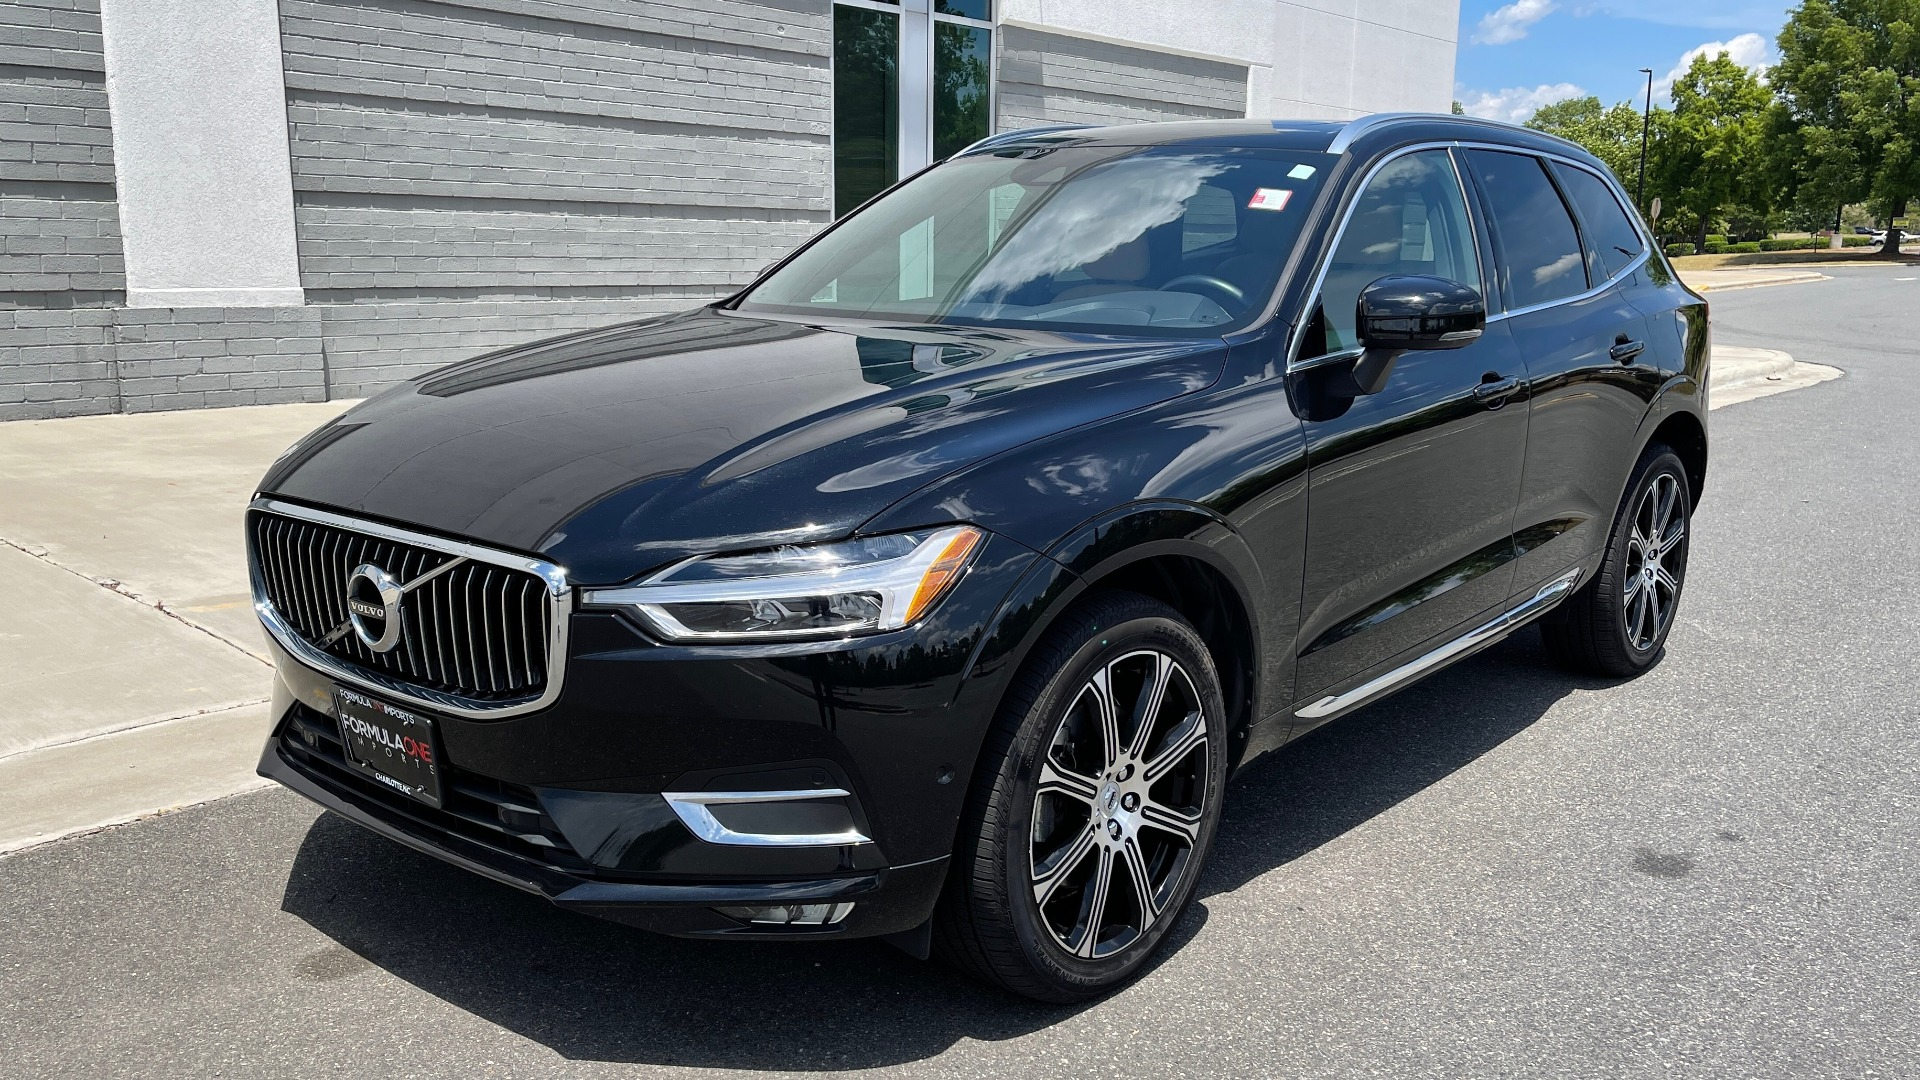 Used 2018 Volvo XC60 INSCRIPTION 2.0L TURBO SUV / AWD / NAV / SUNROOF / REARVIEW for sale $38,795 at Formula Imports in Charlotte NC 28227 2